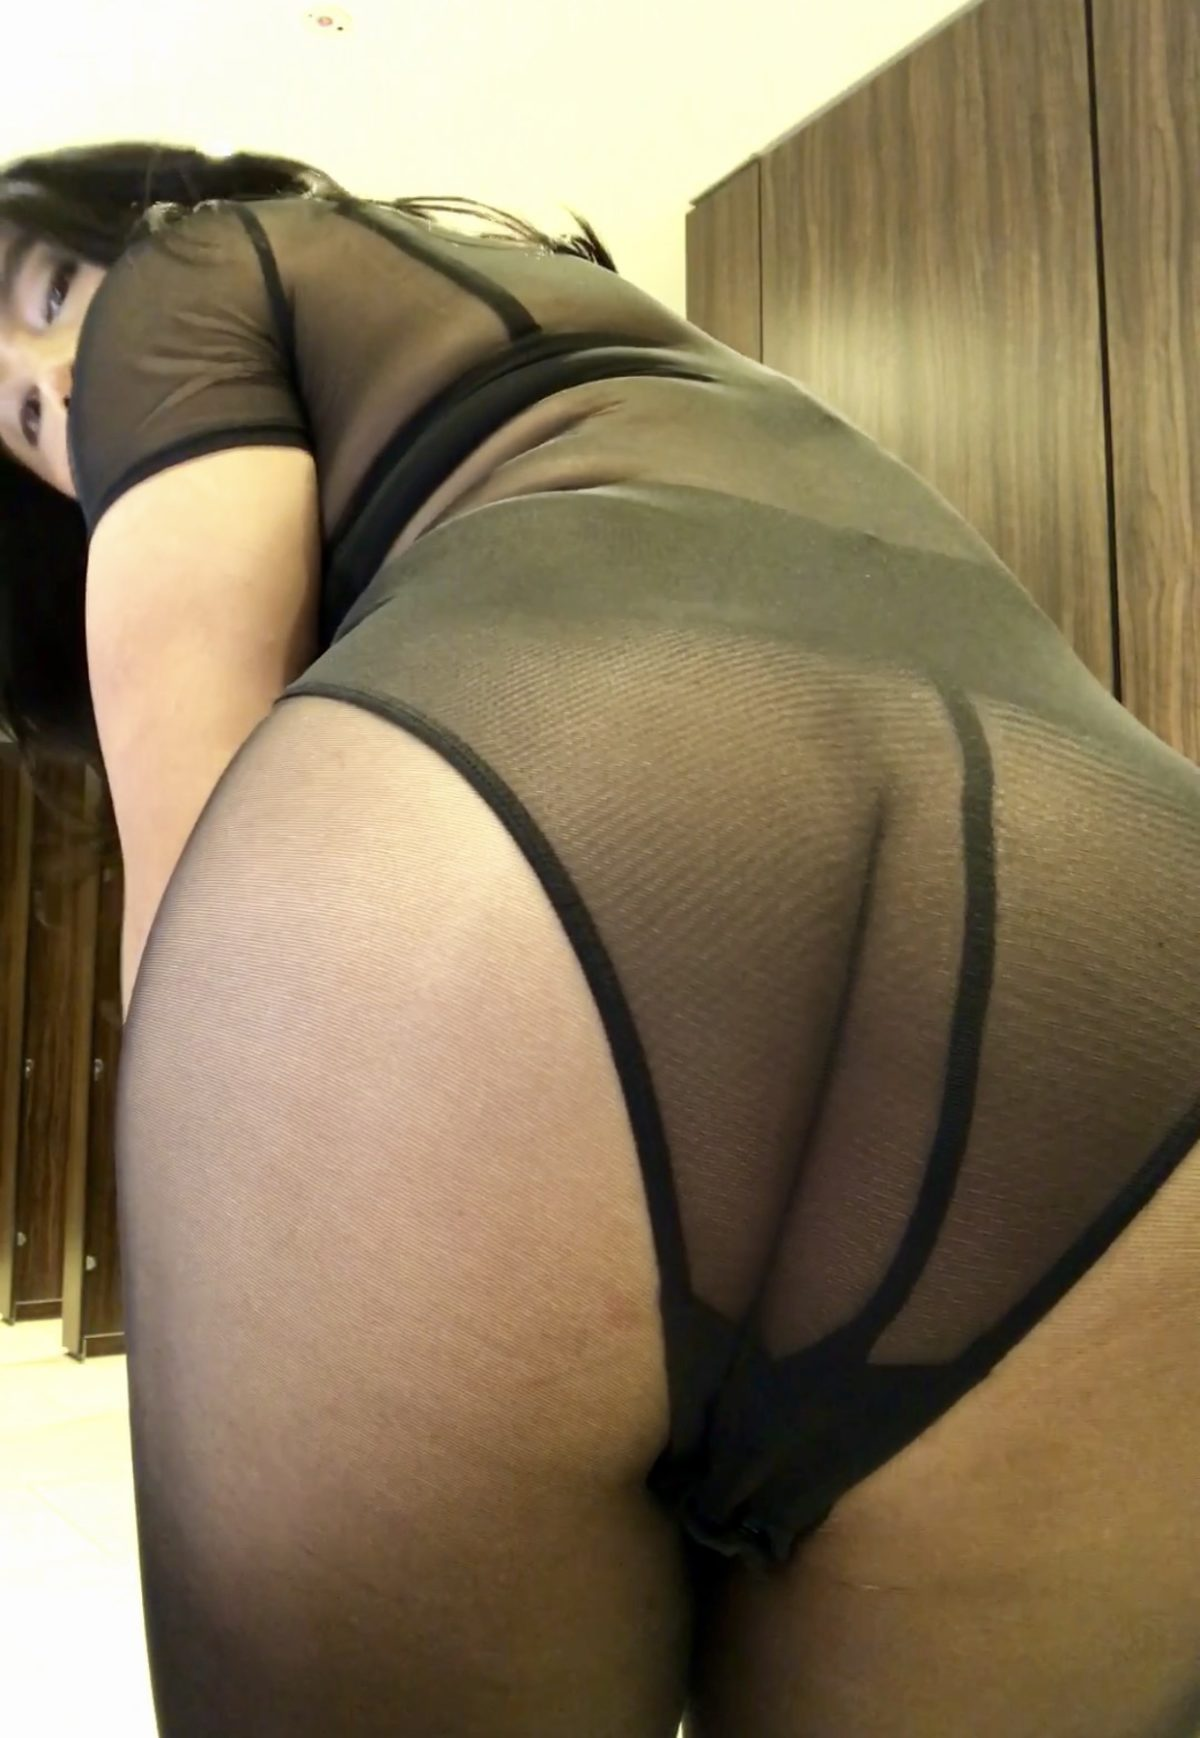 Black pantyhose and mesh top